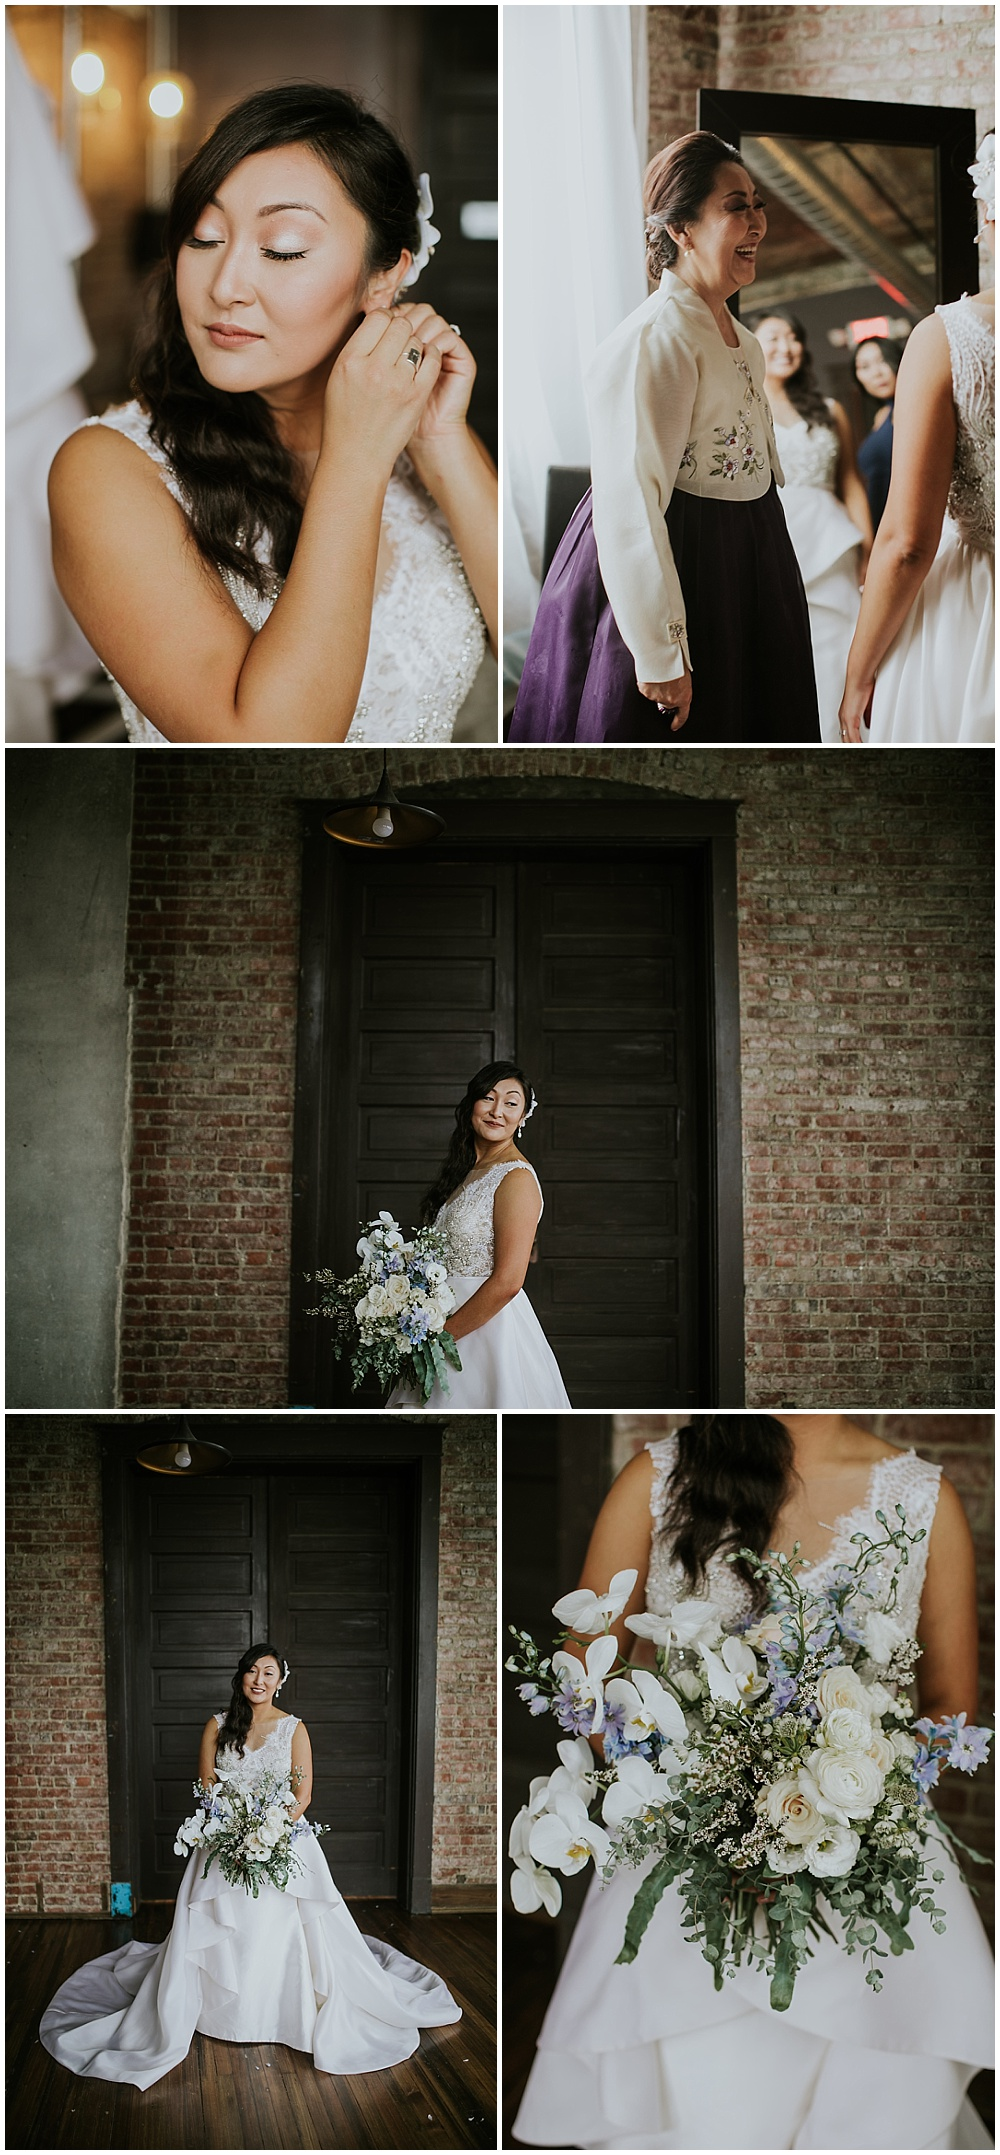 Bridal portraits and details; white ornate v-neck wedding dress with green, blue and white bridal bouquet | Korean-American intimate multicultural wedding in Neidhammer coffee shop